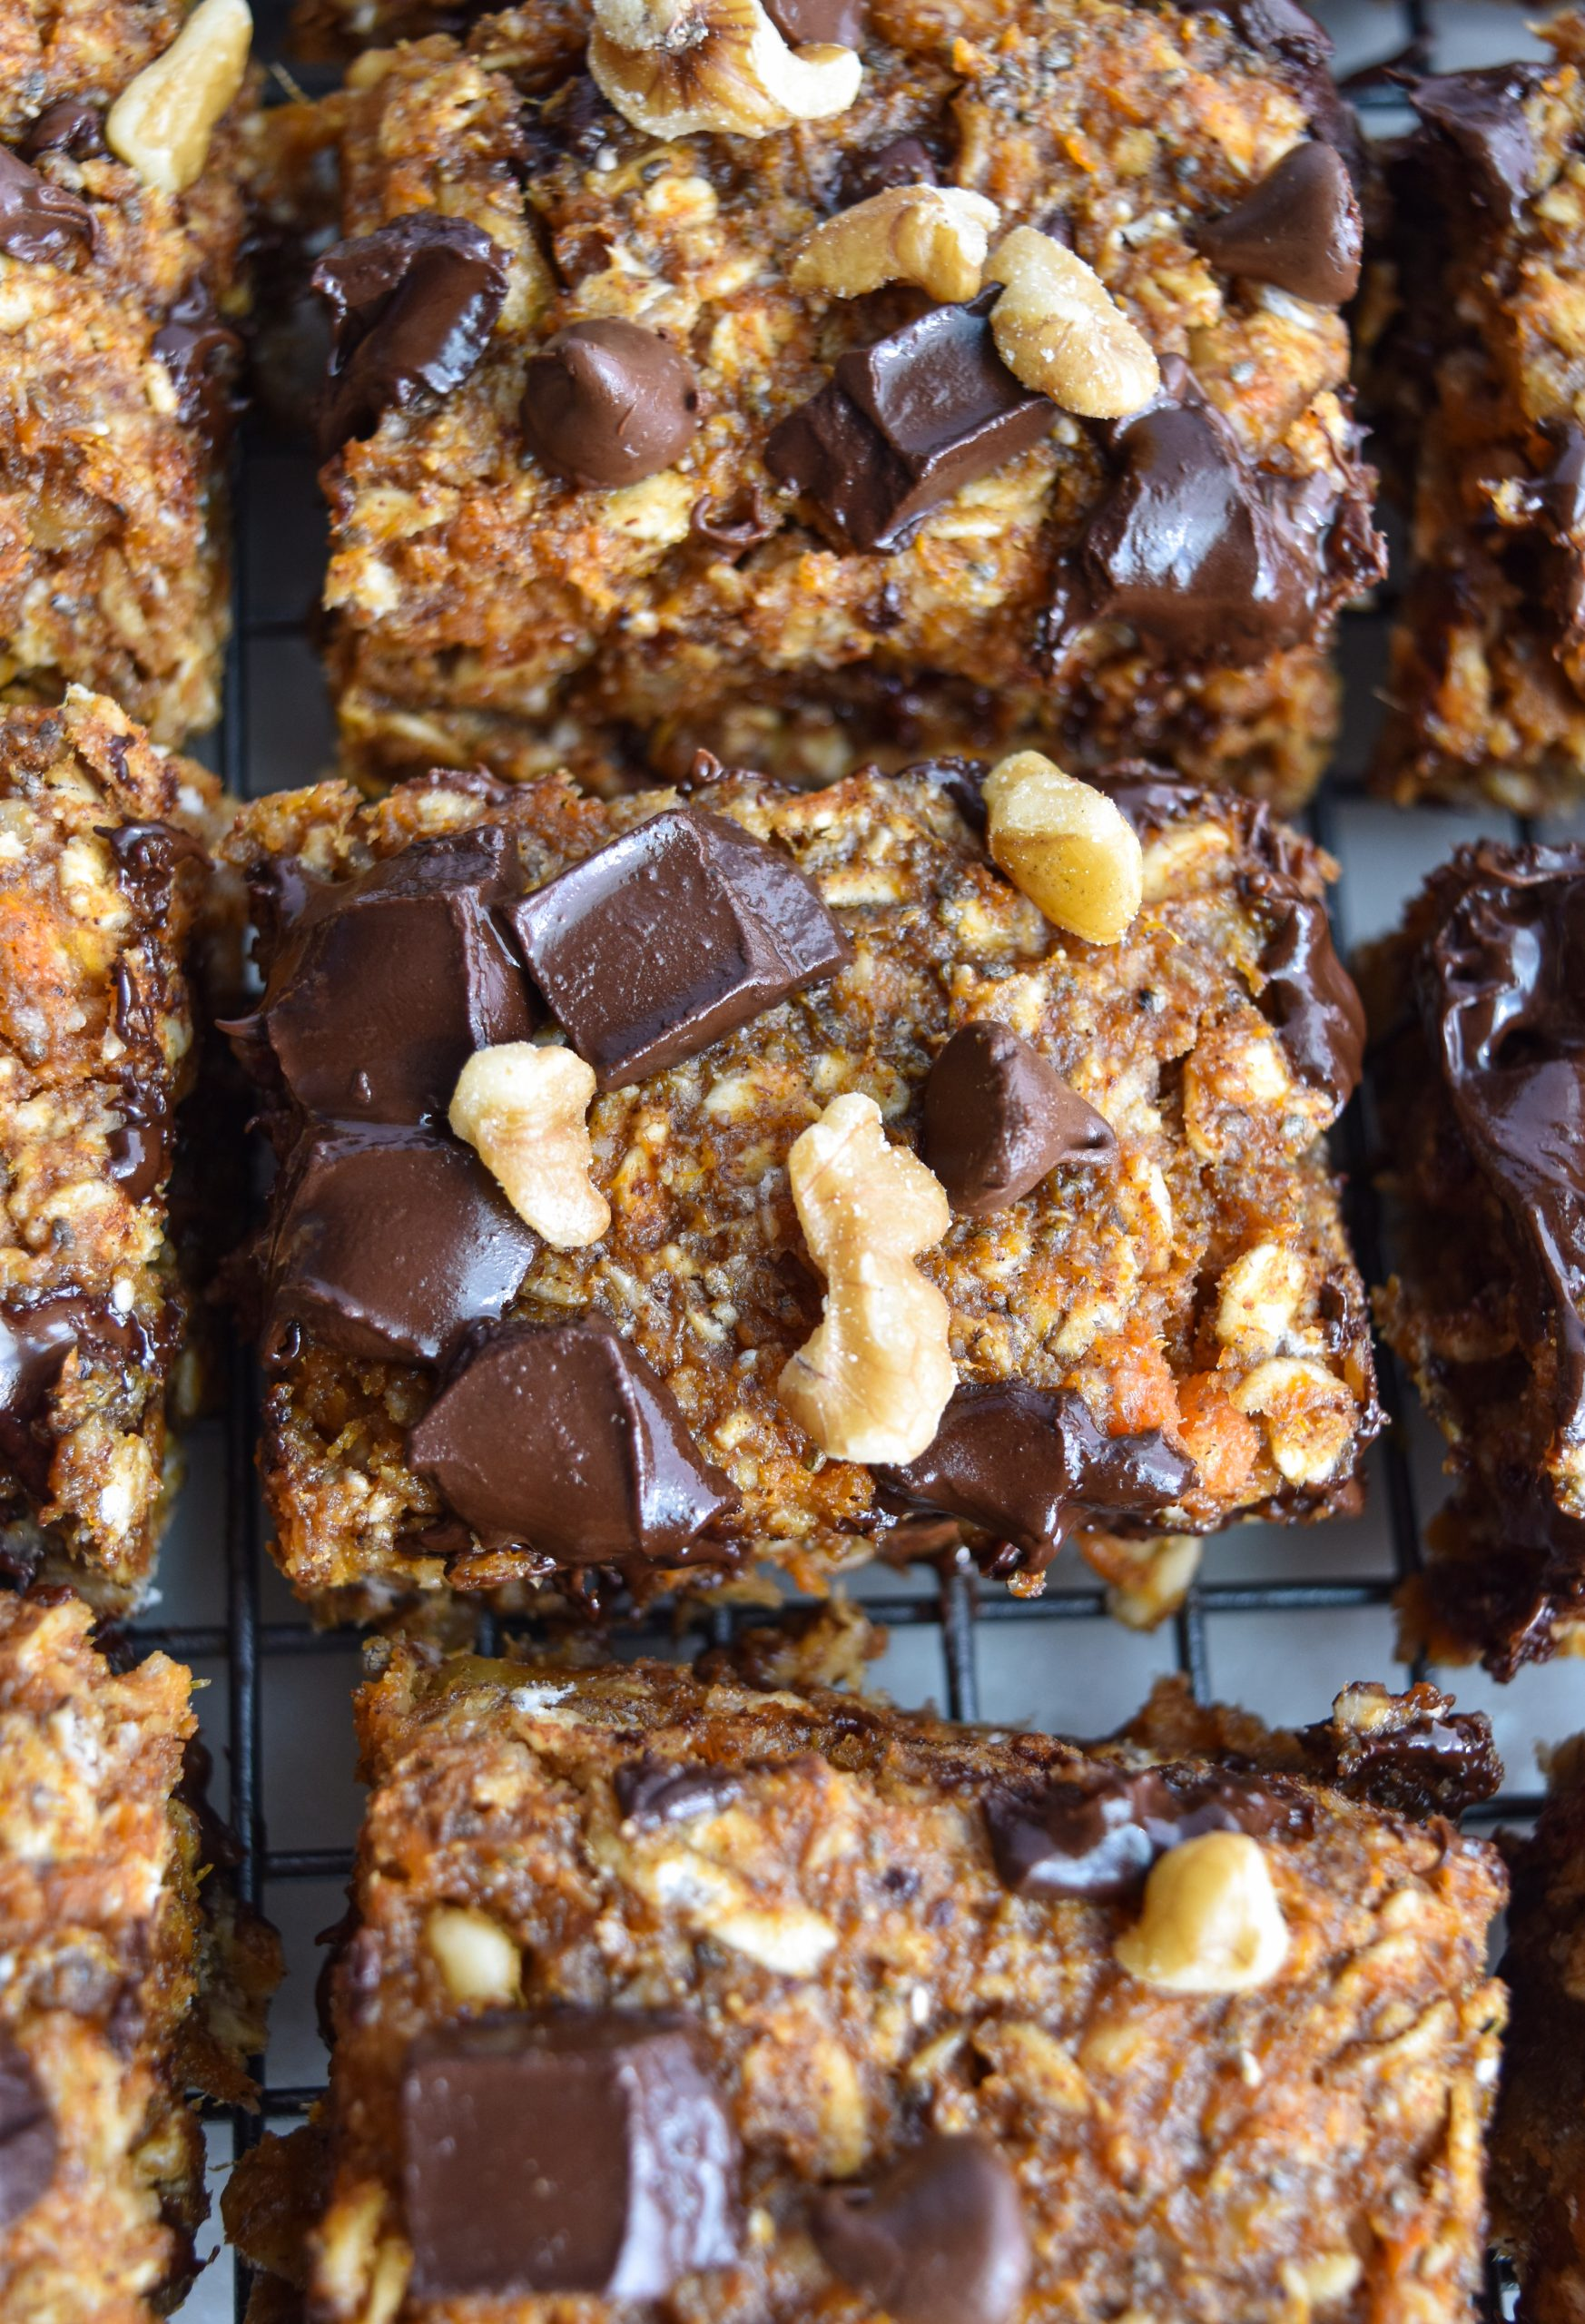 Chocolate Chip Sweet Potato Bars 2.jpg Chocolate Chip Sweet Potato Bars 3.jpg Chocolate Chip Sweet Potato Bars